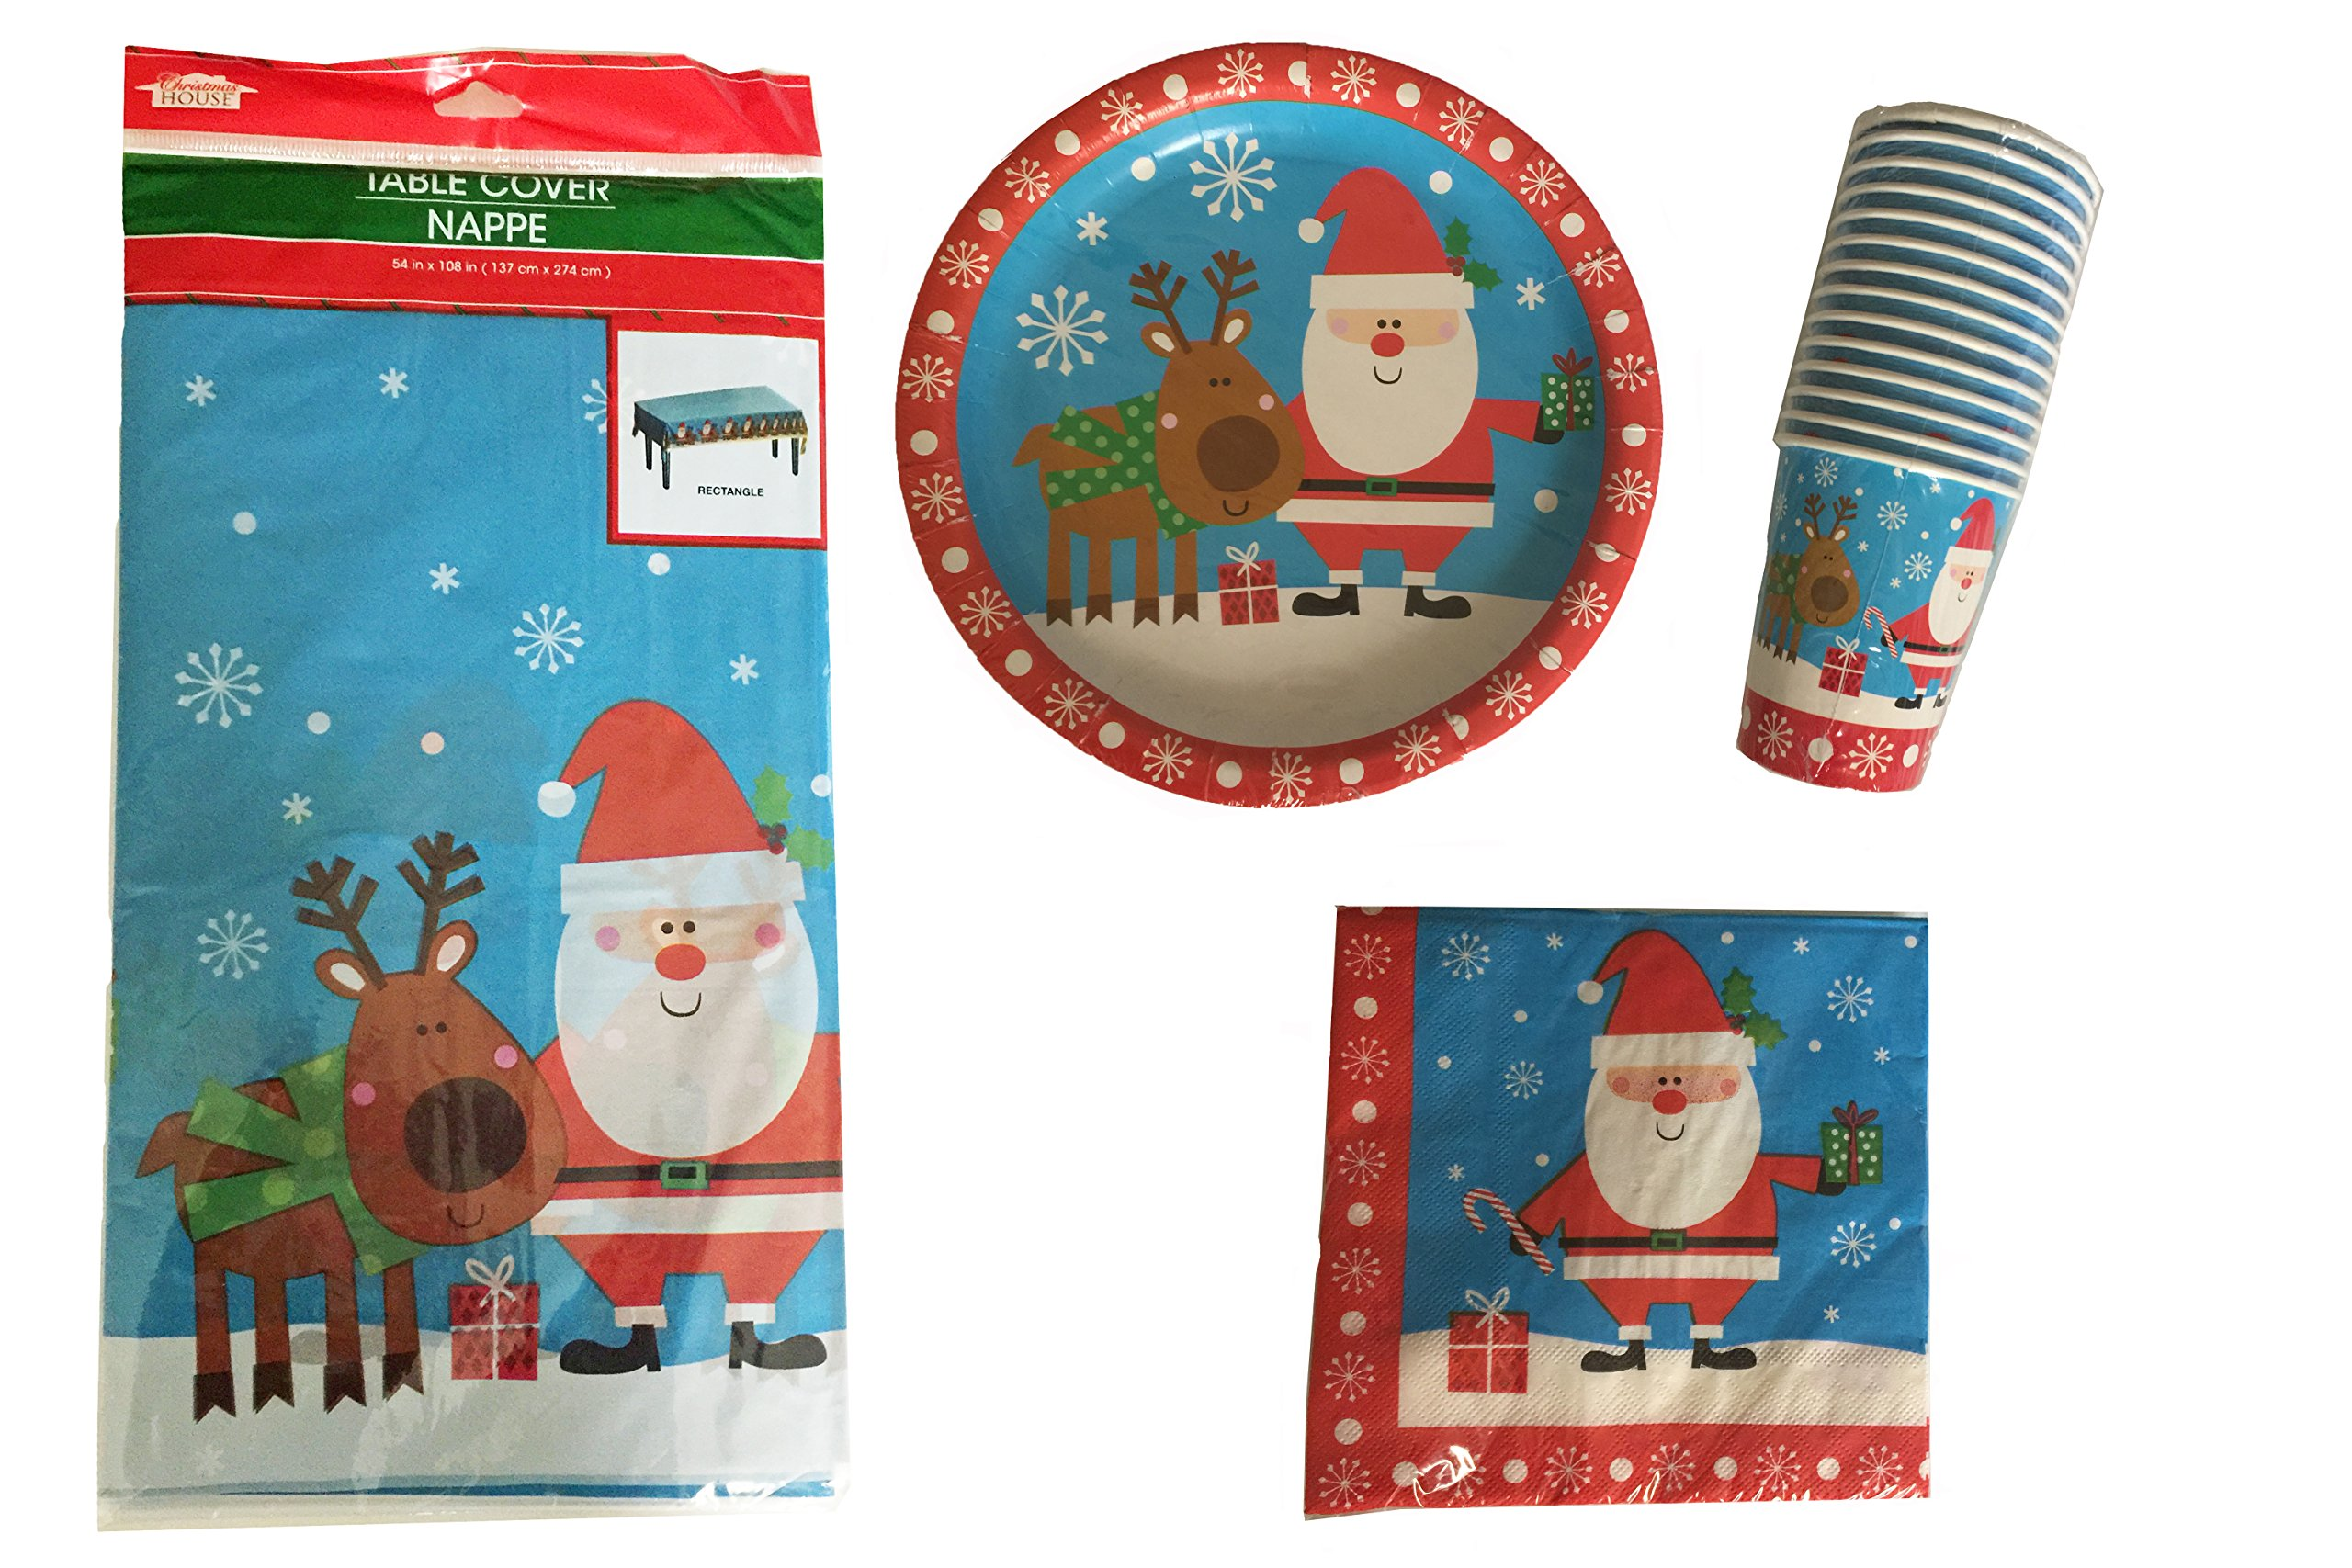 Christmas Holiday Tableware Set, 4 Piece Bundle with Dinner Plates, Napkins, Cups, Tablecloth, Serves 14 (Santa Blue)